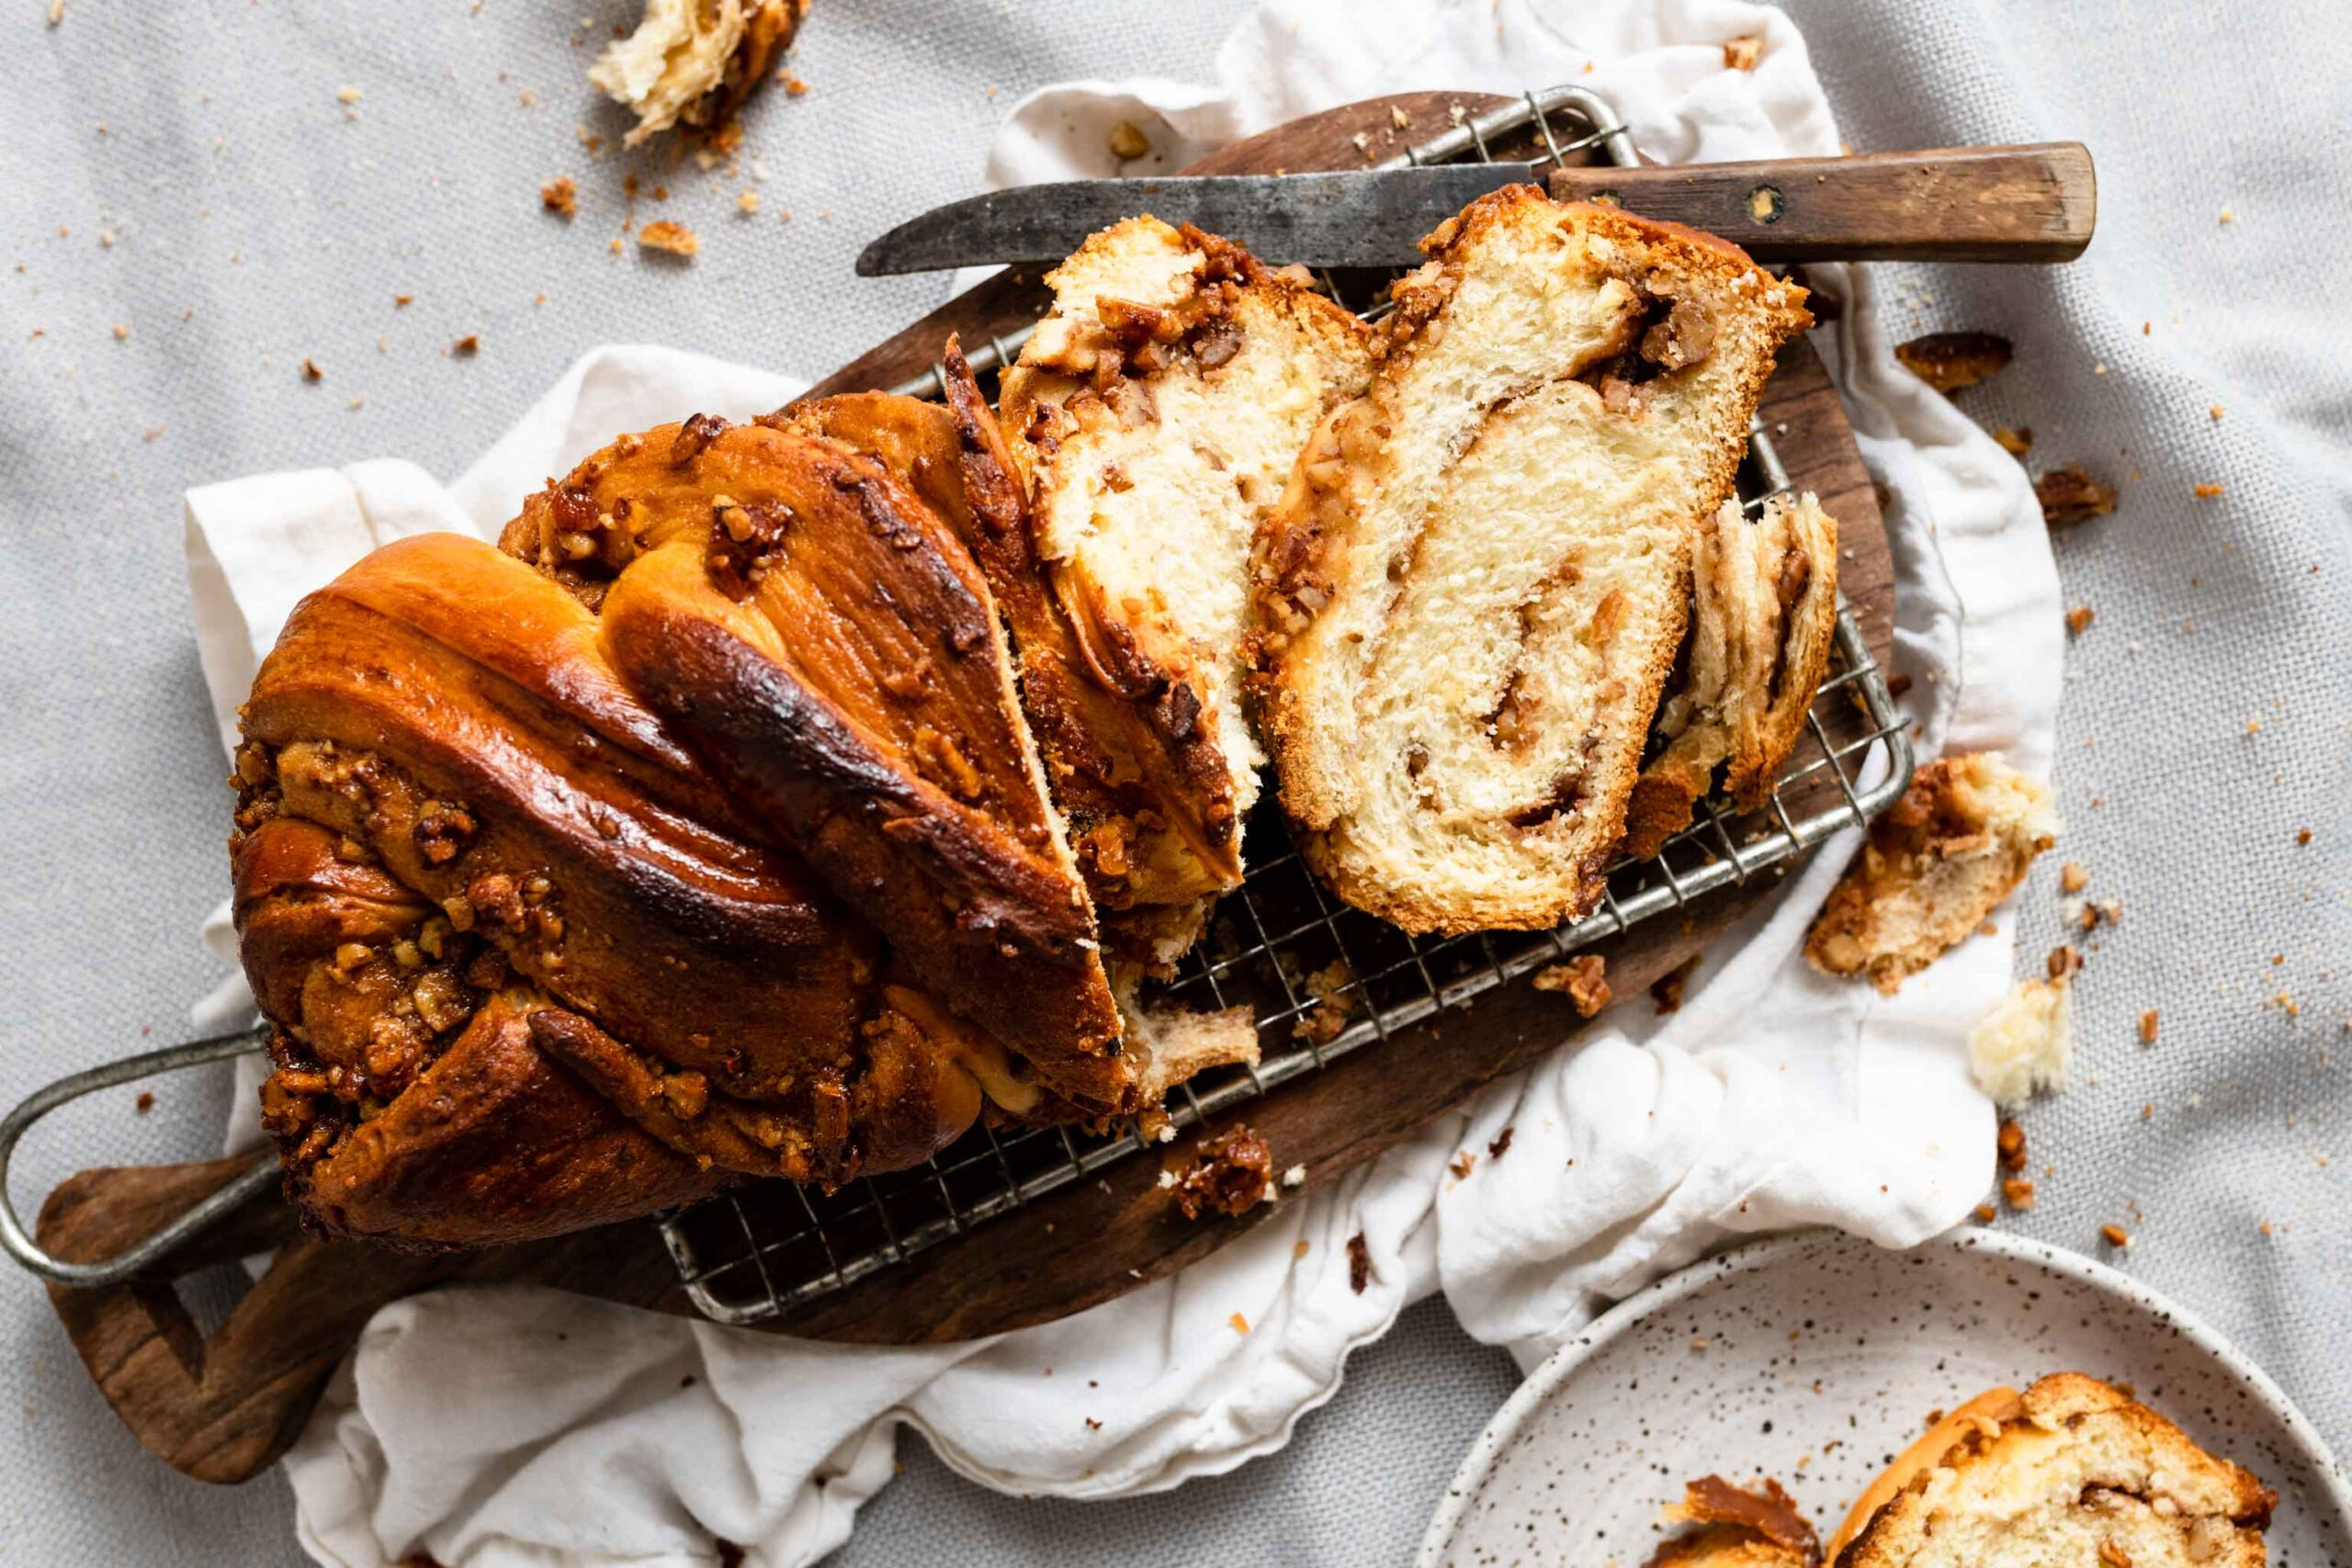 Caramel Babka bread recipe with pecans and butterscotch